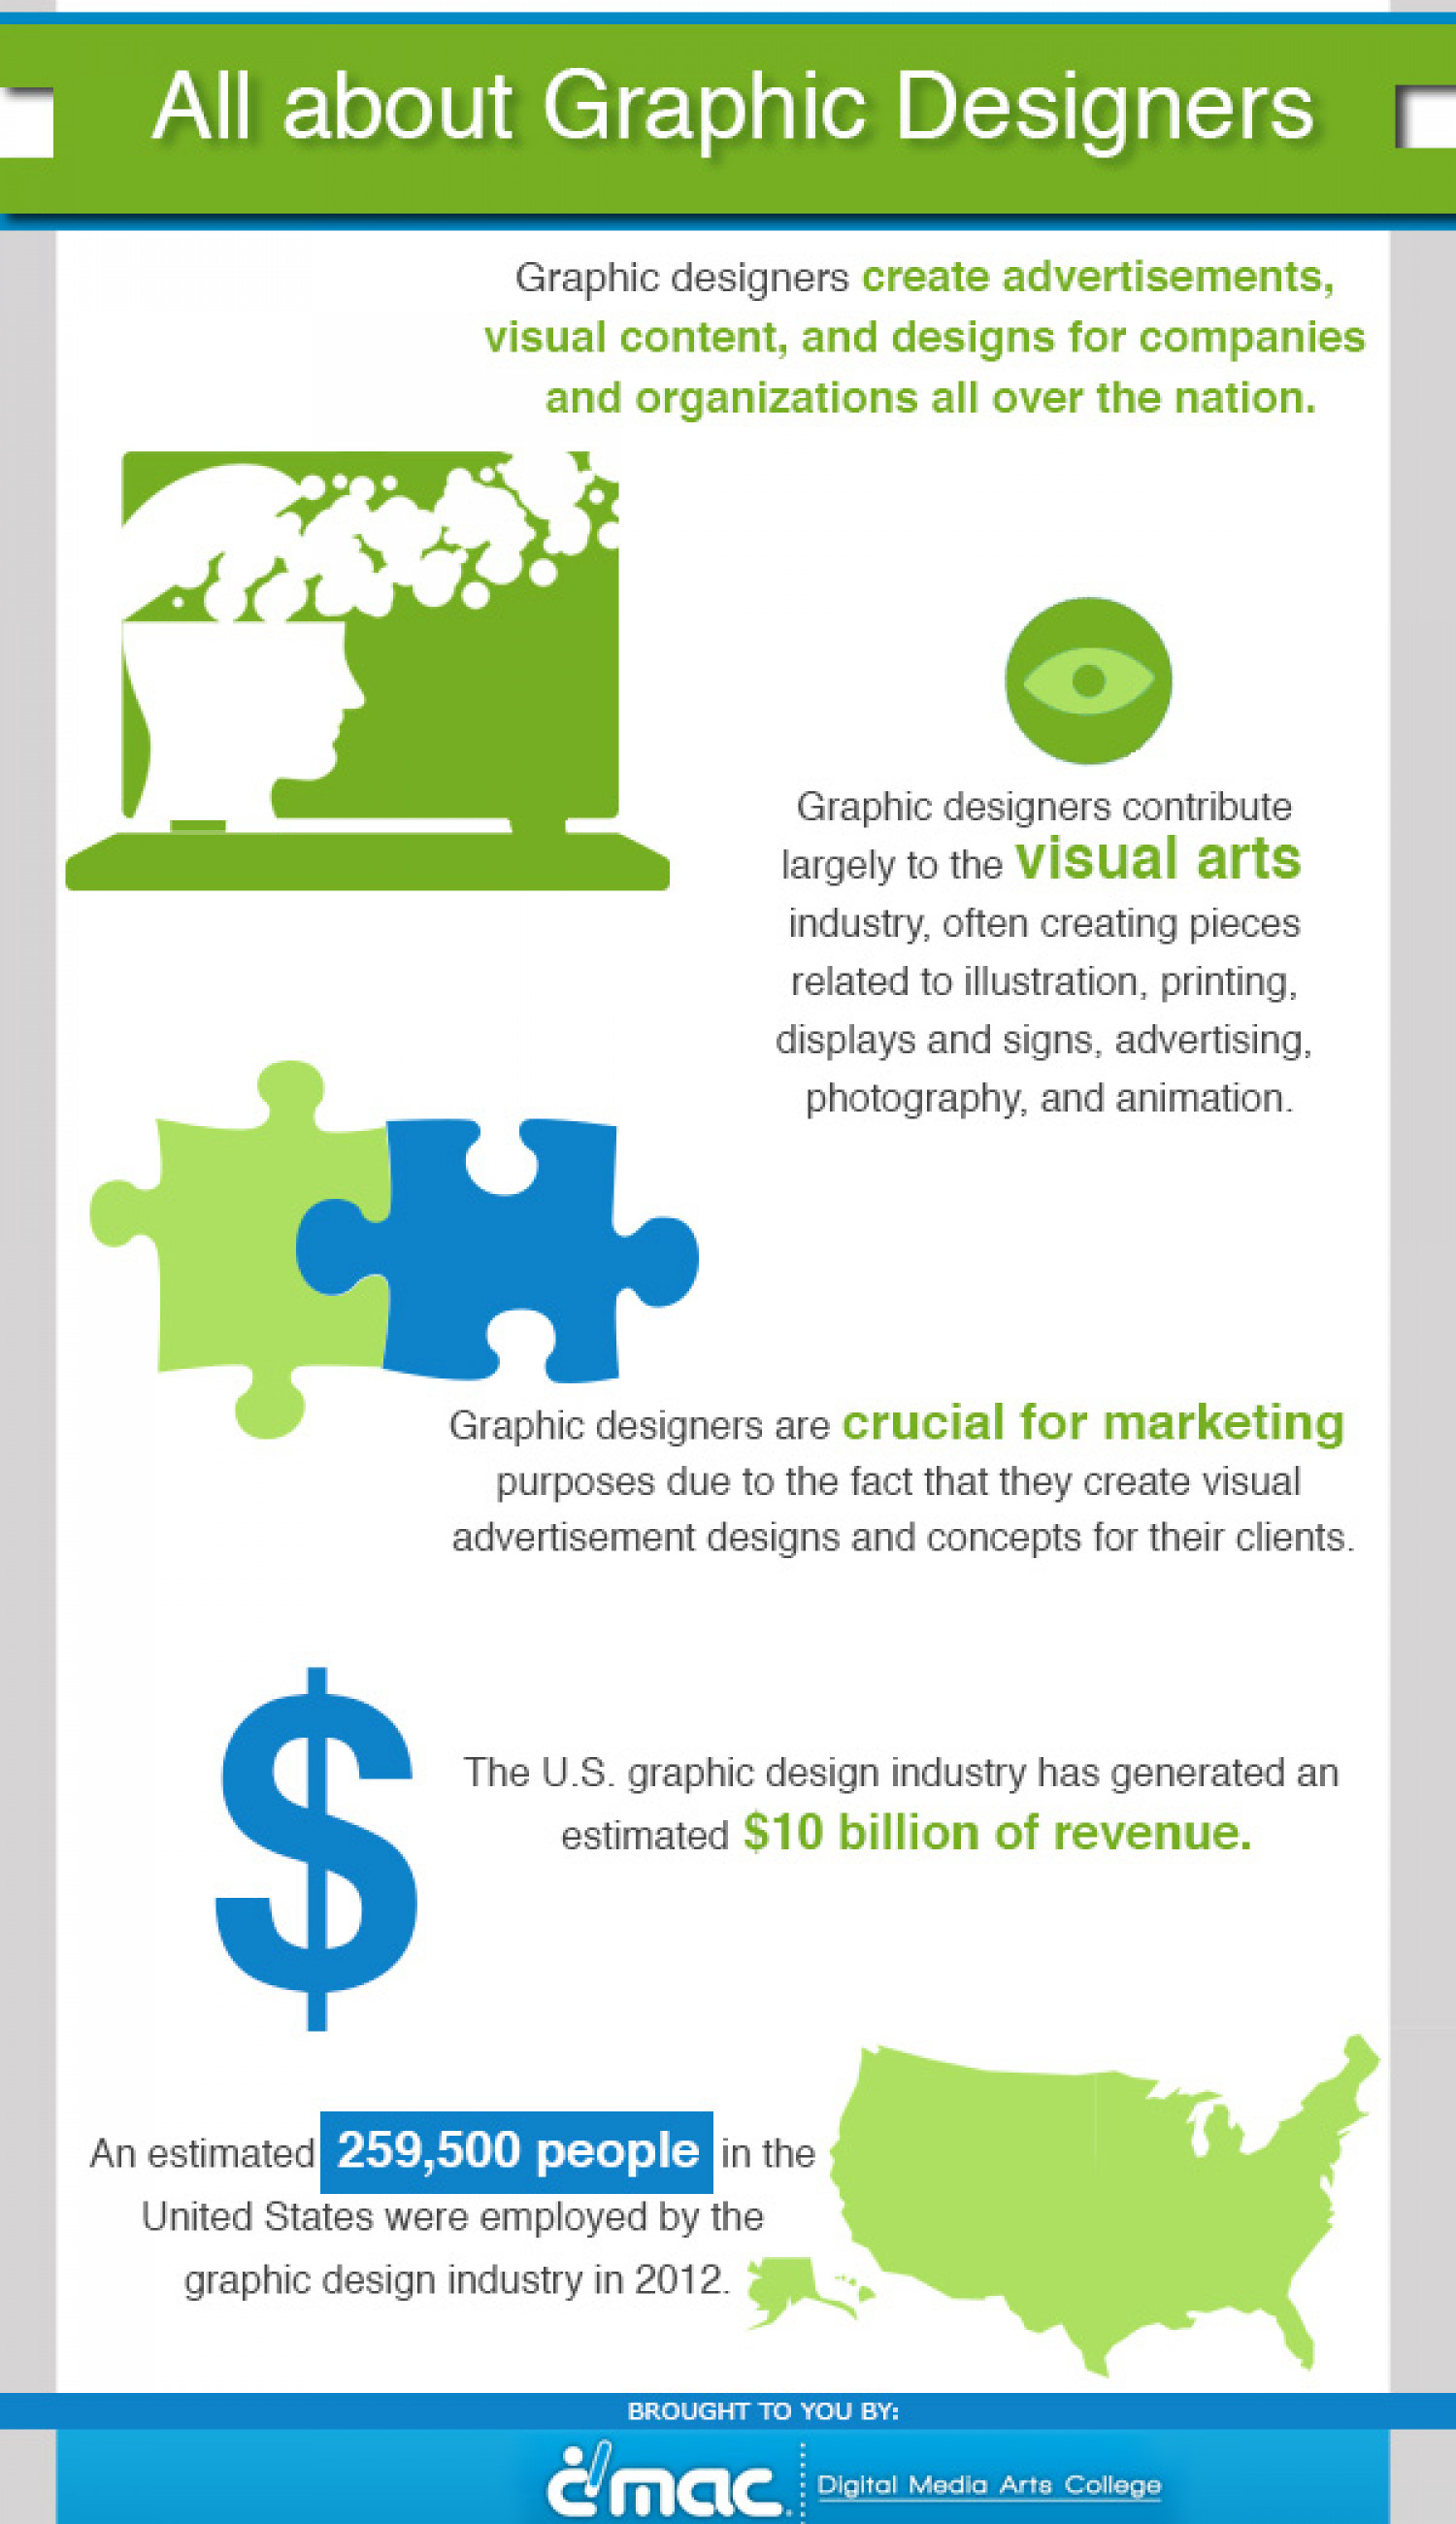 All About Graphic Designers Infographic